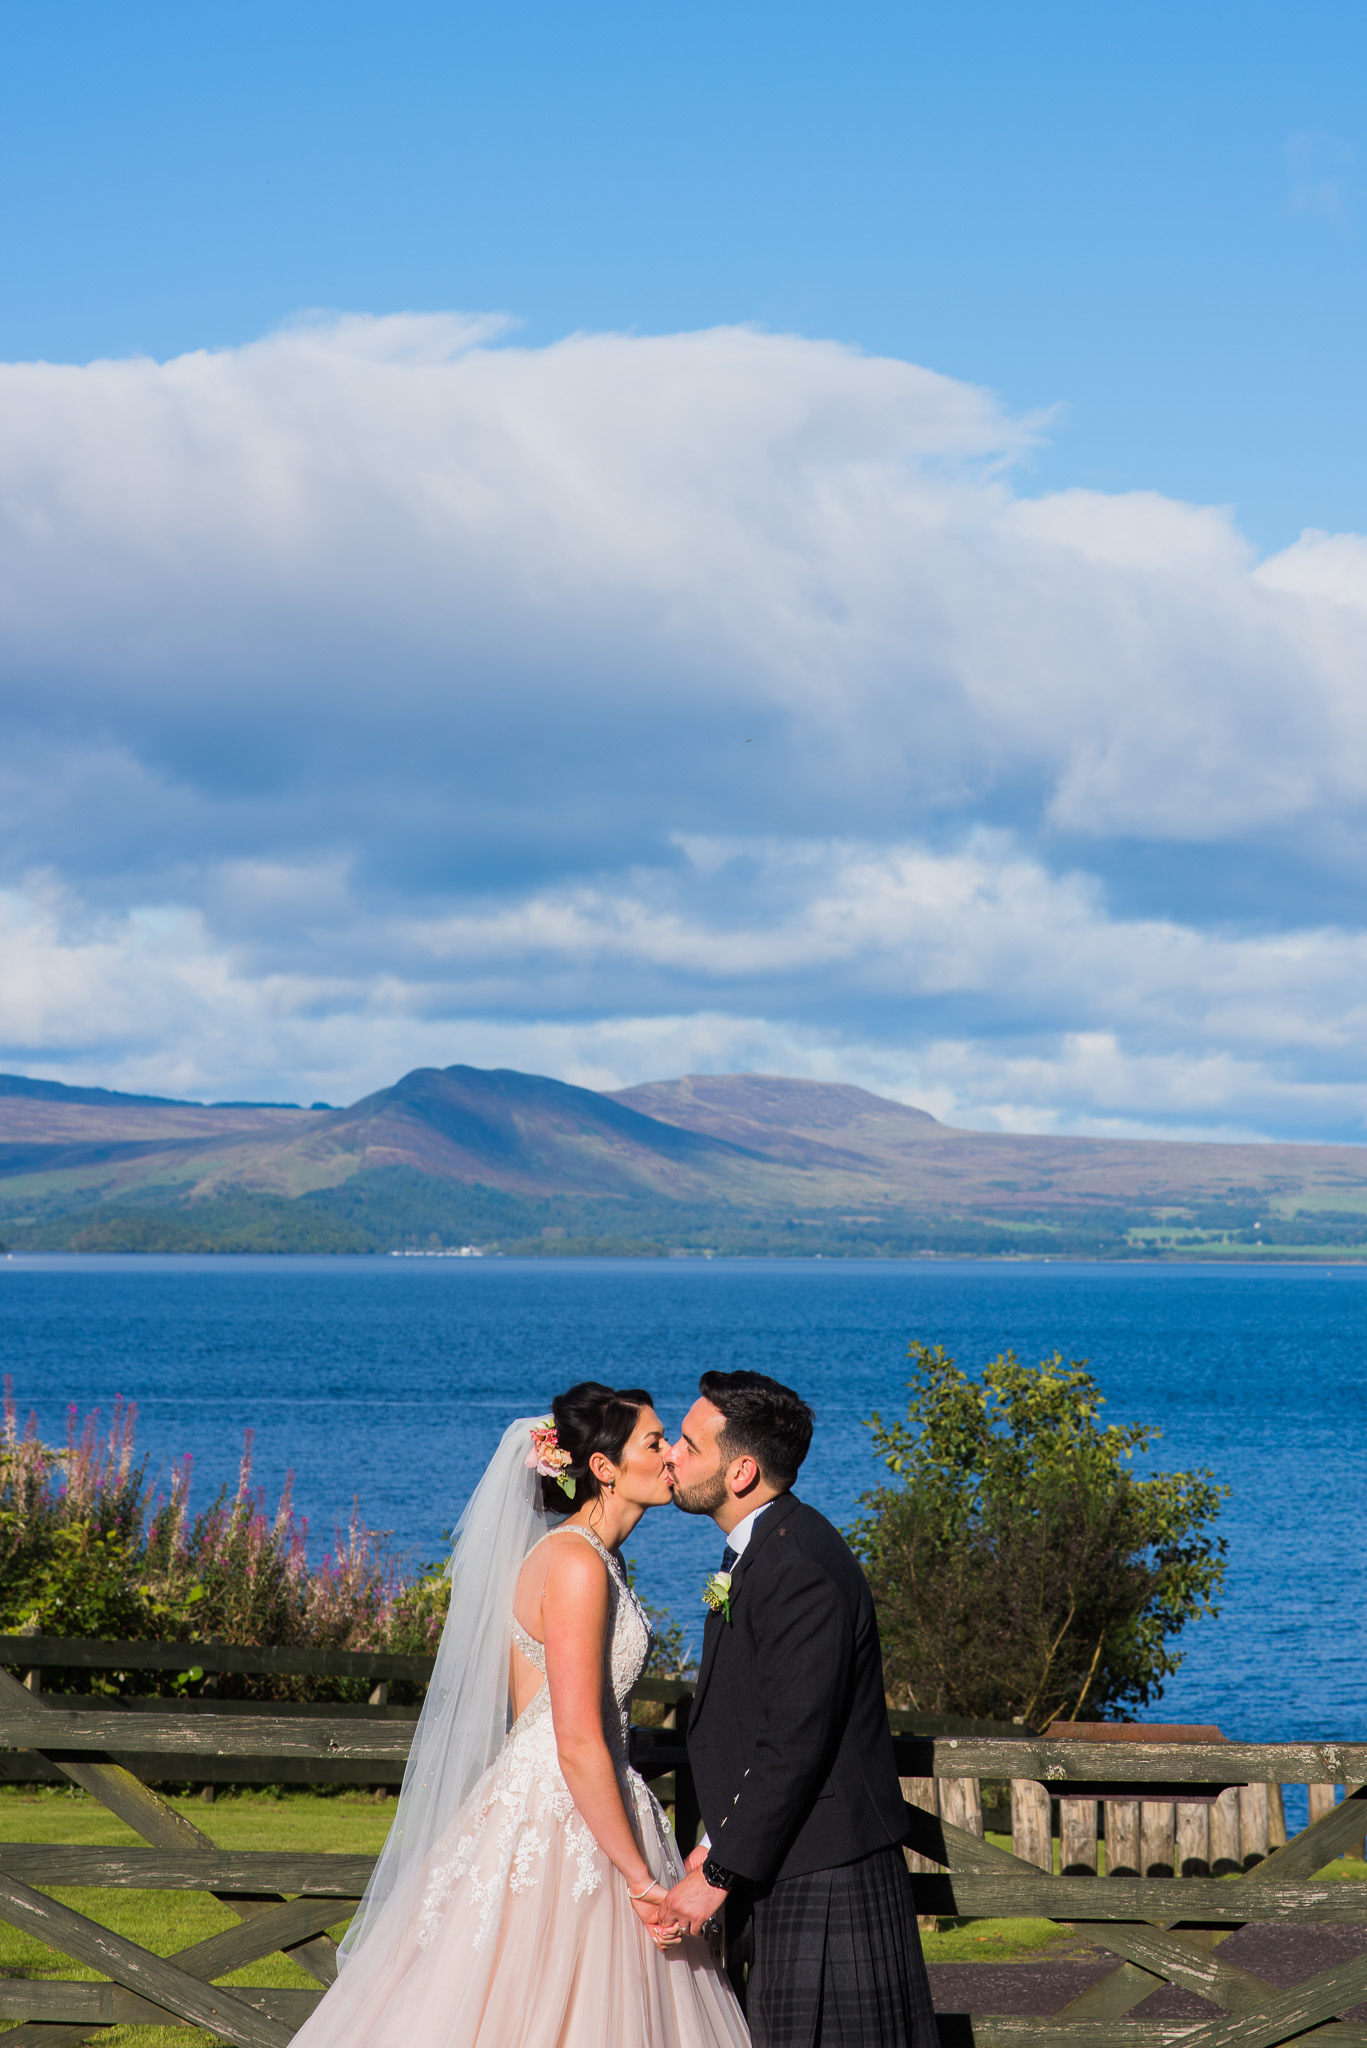 Bride and Groom at Loch Lomond Wedding